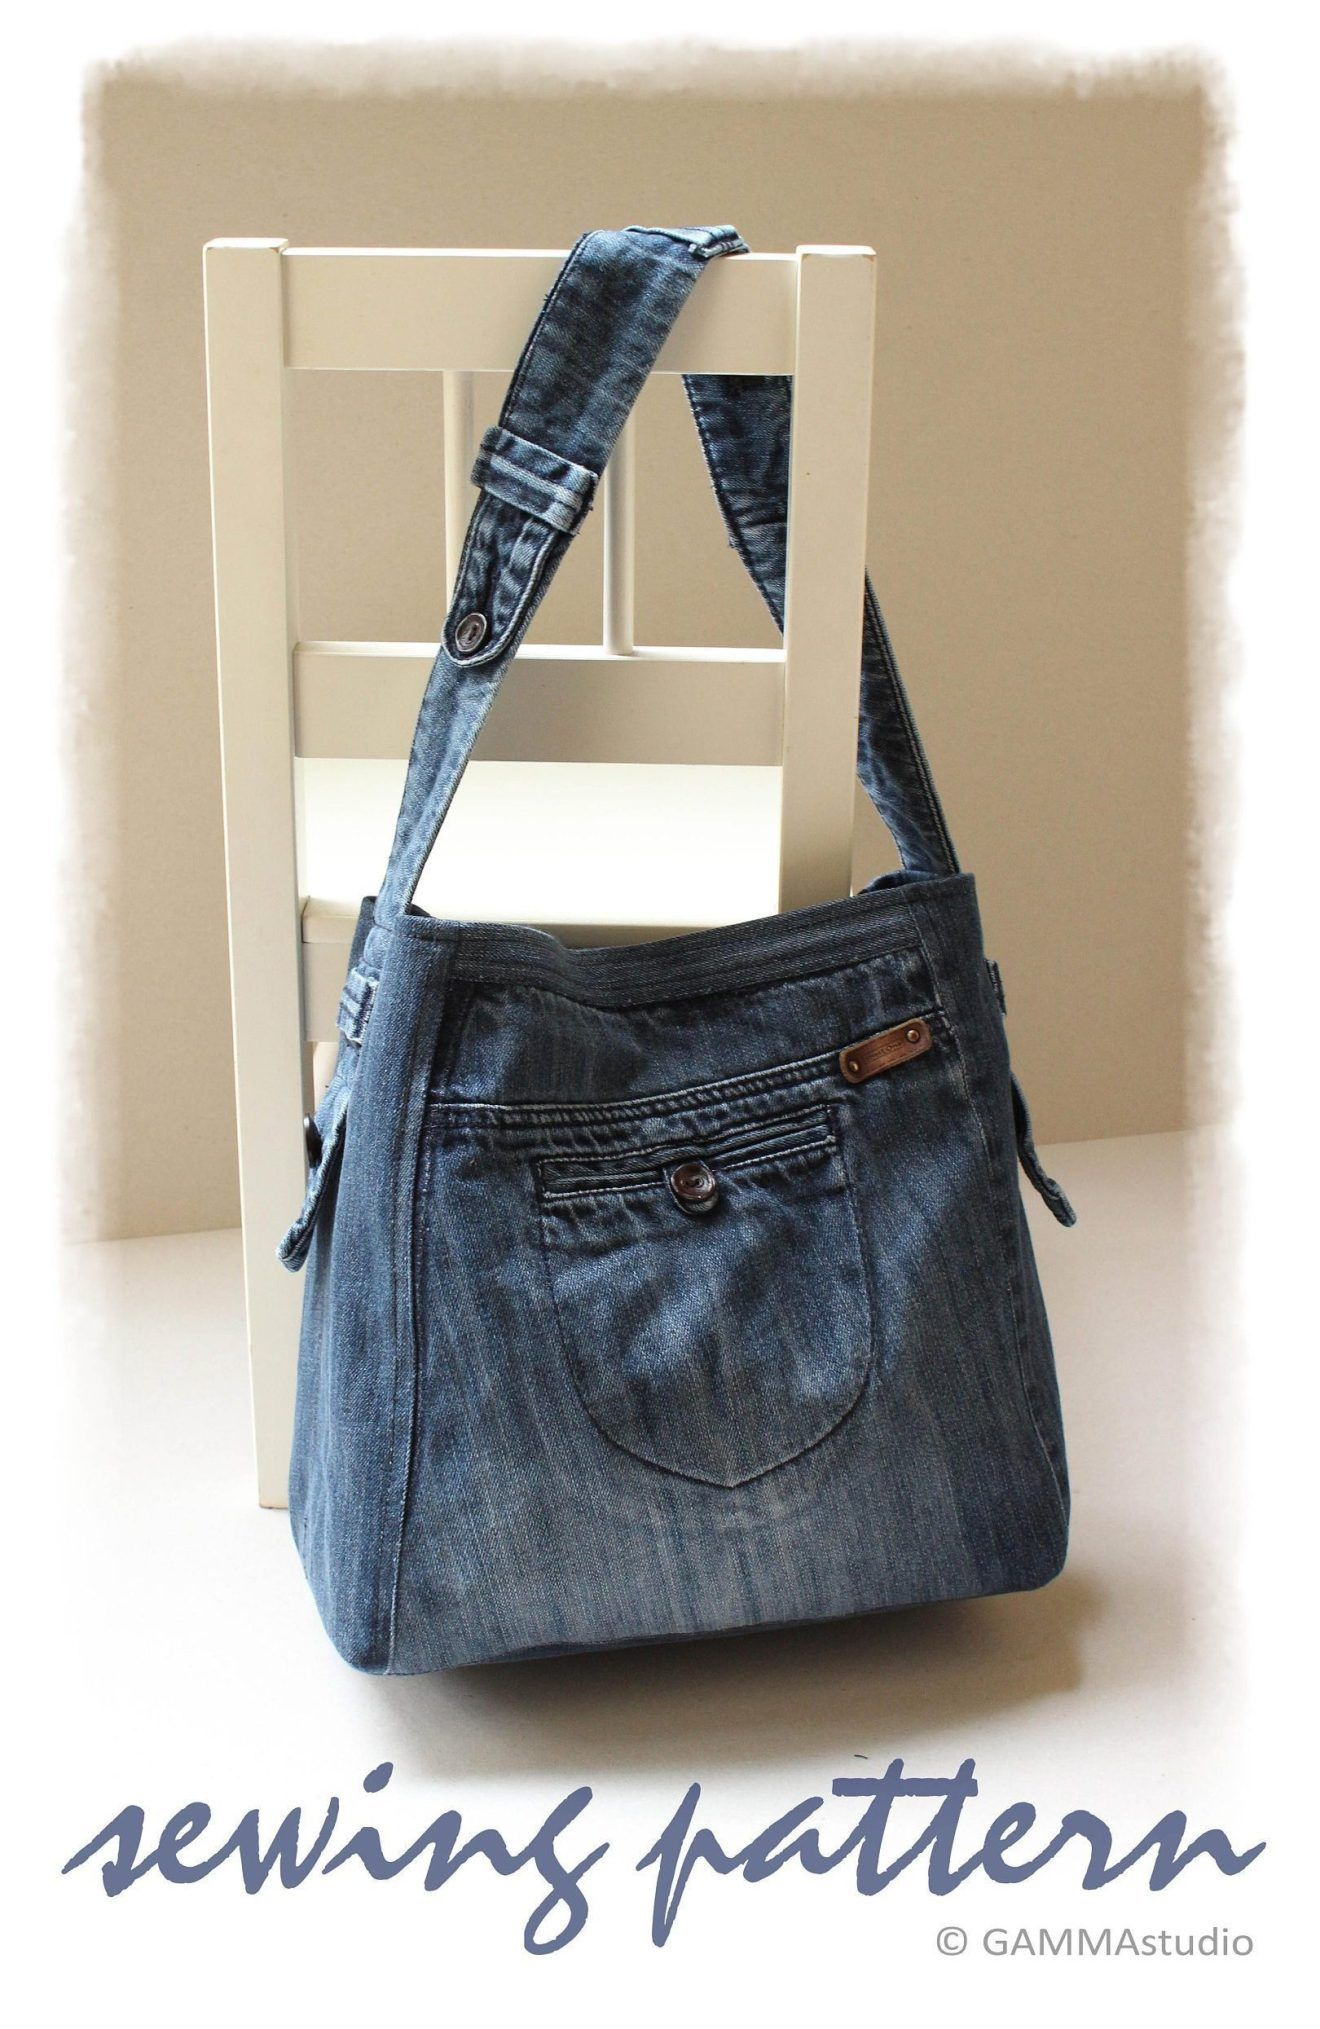 Sew a Modern Recycled Denim Purse